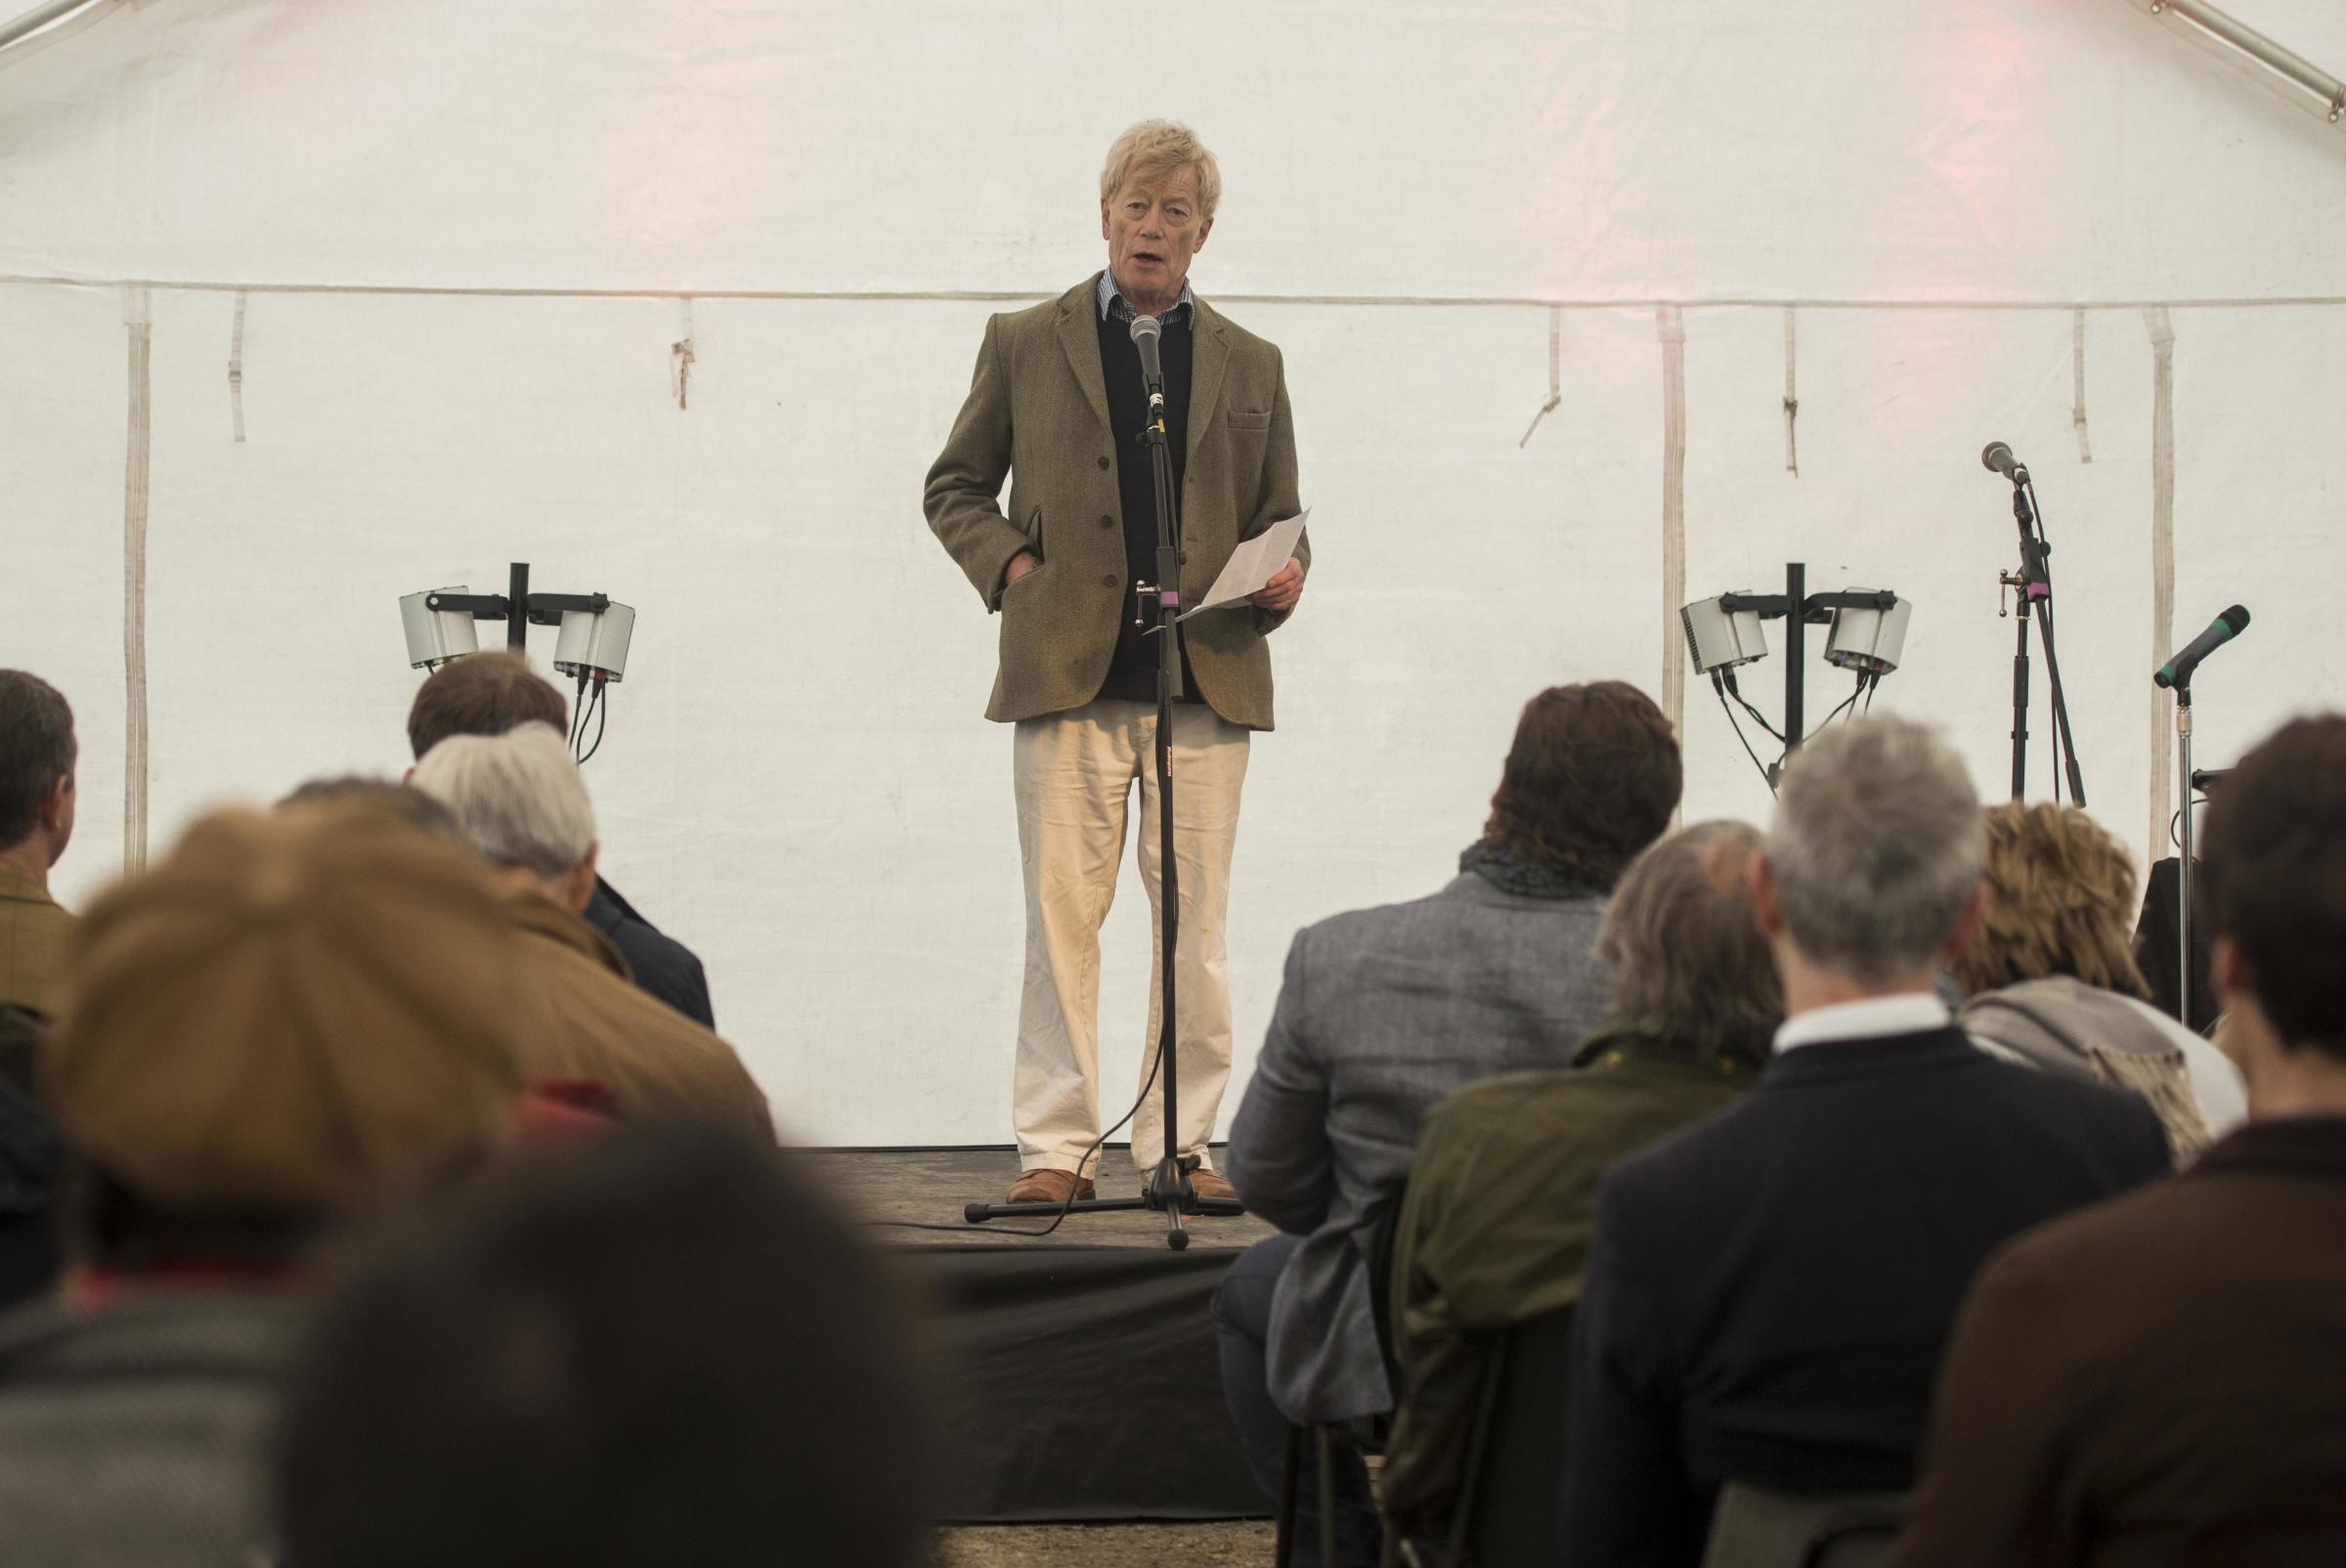 Sir Roger Scruton sacked as government advisor over anti-Semitic and Islamophobic comments